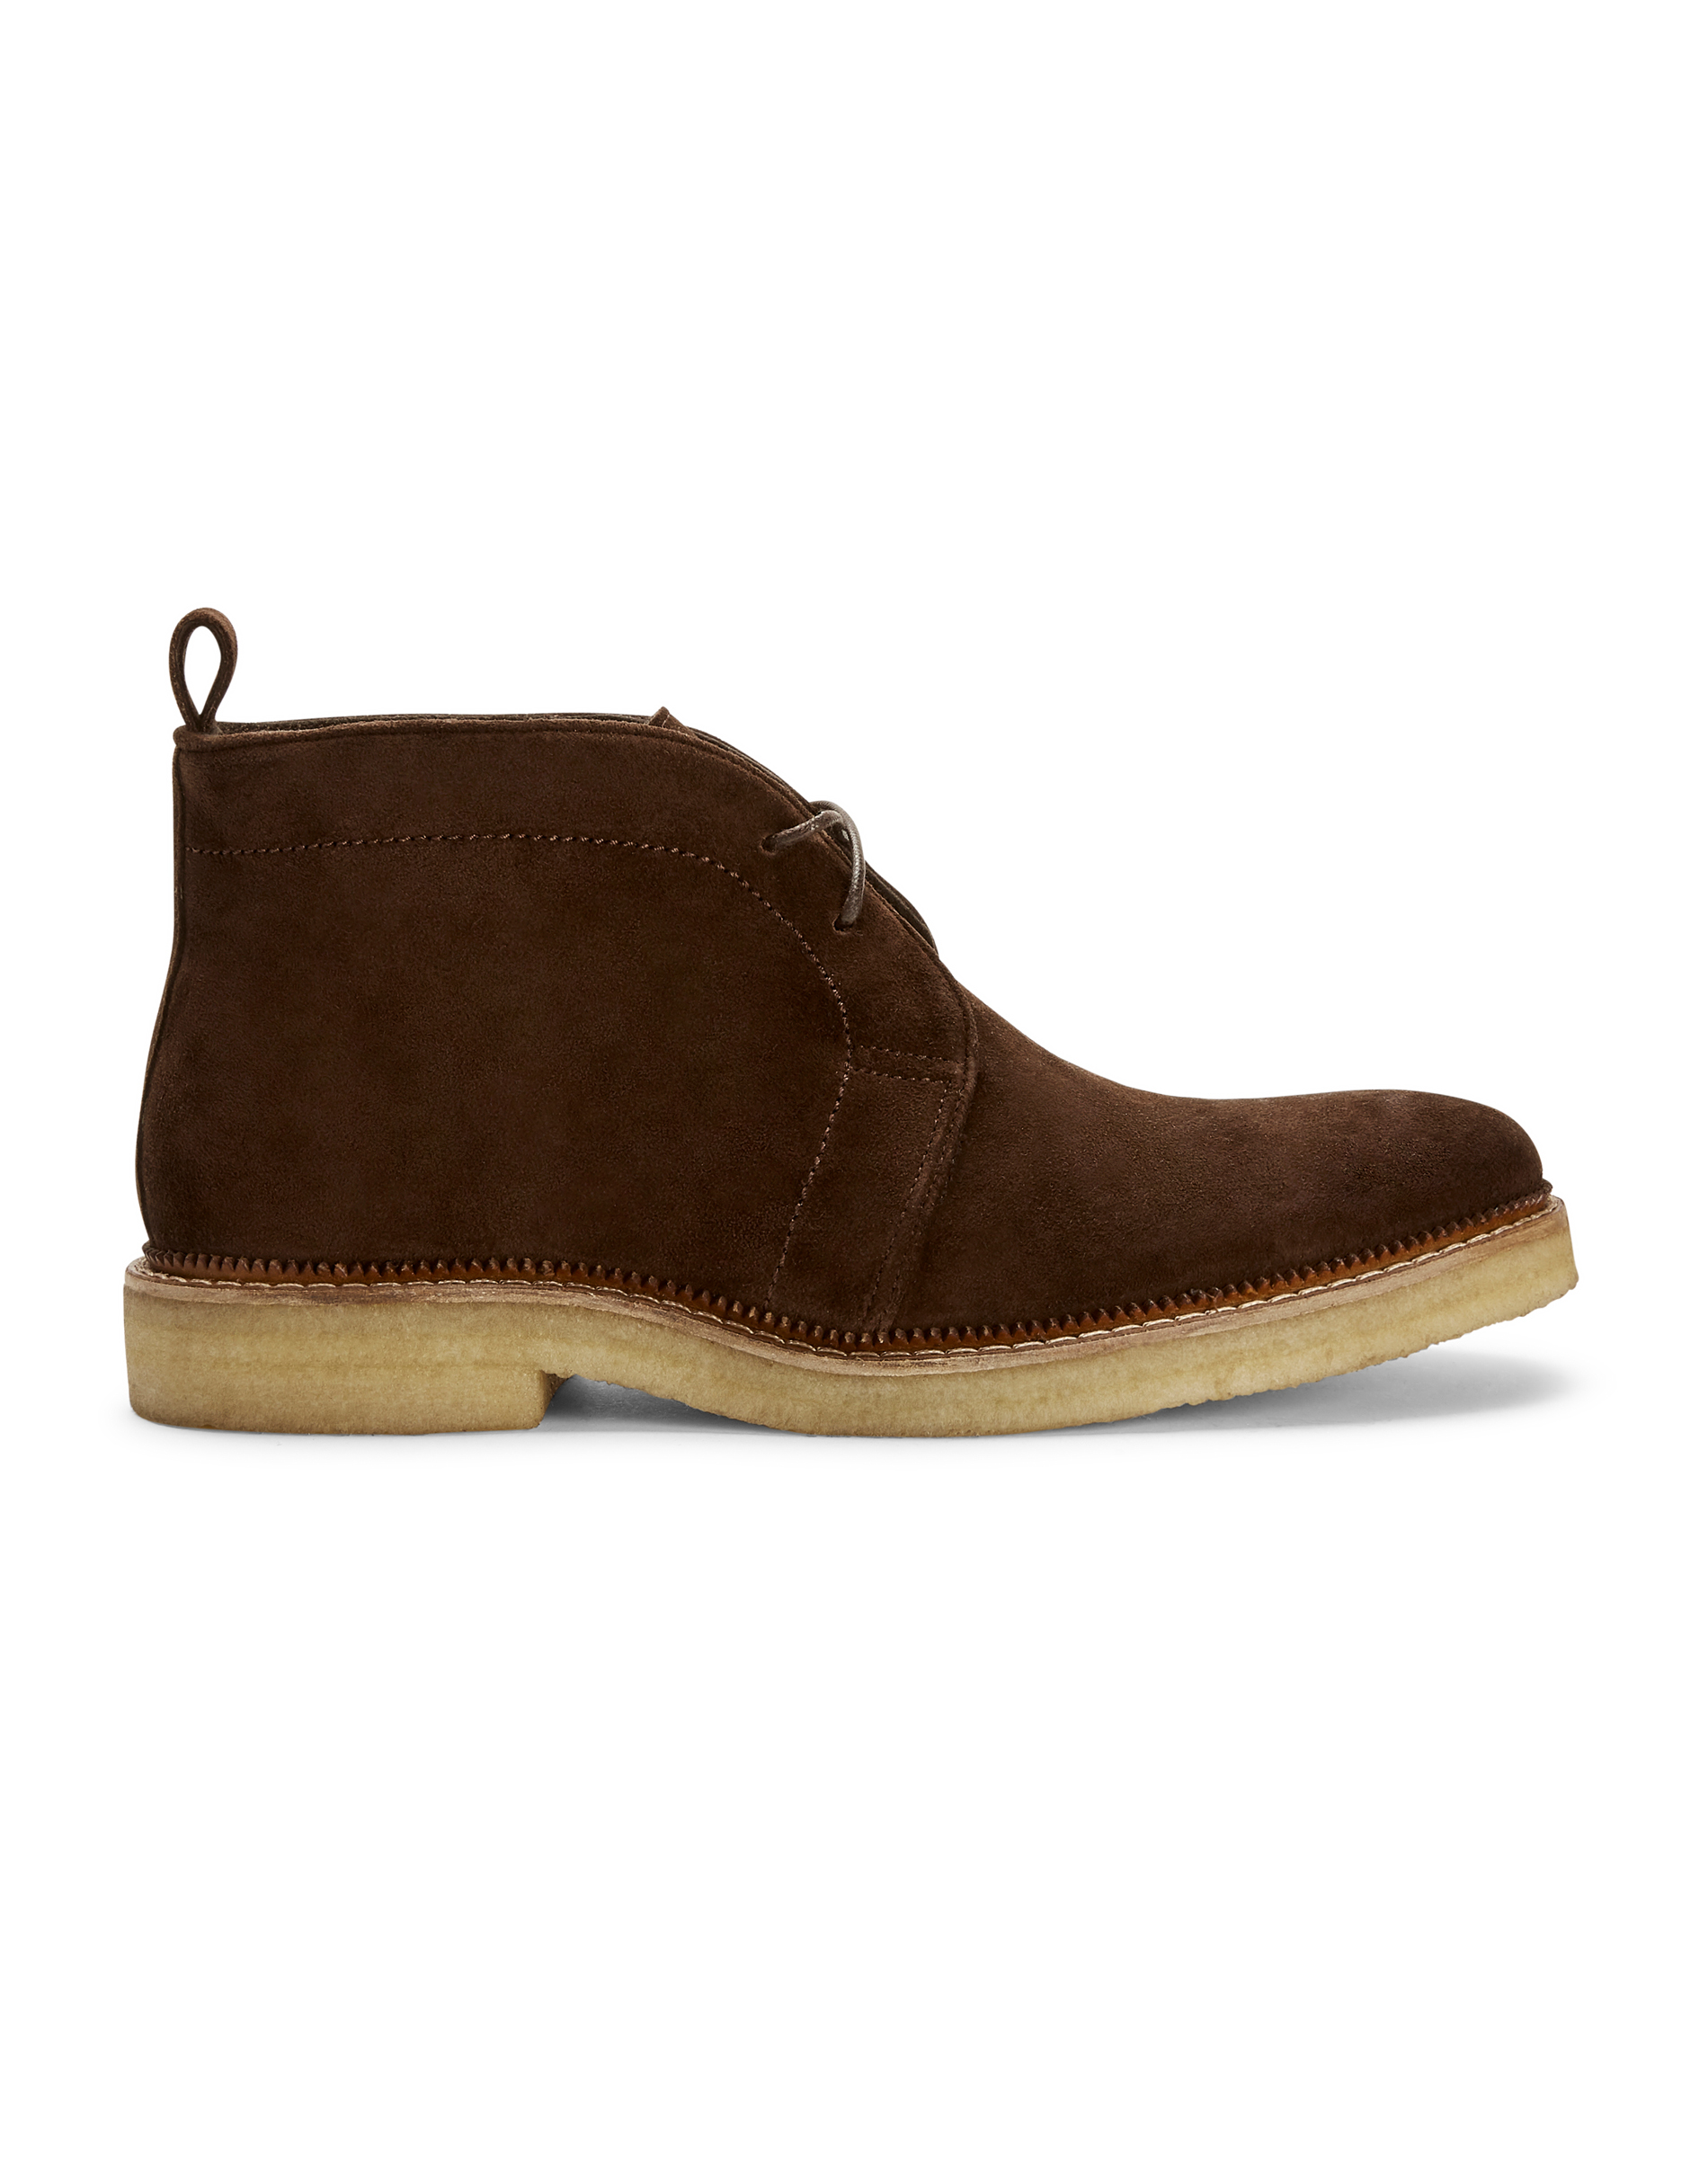 MVP Brown Suede Leather Desert Boot